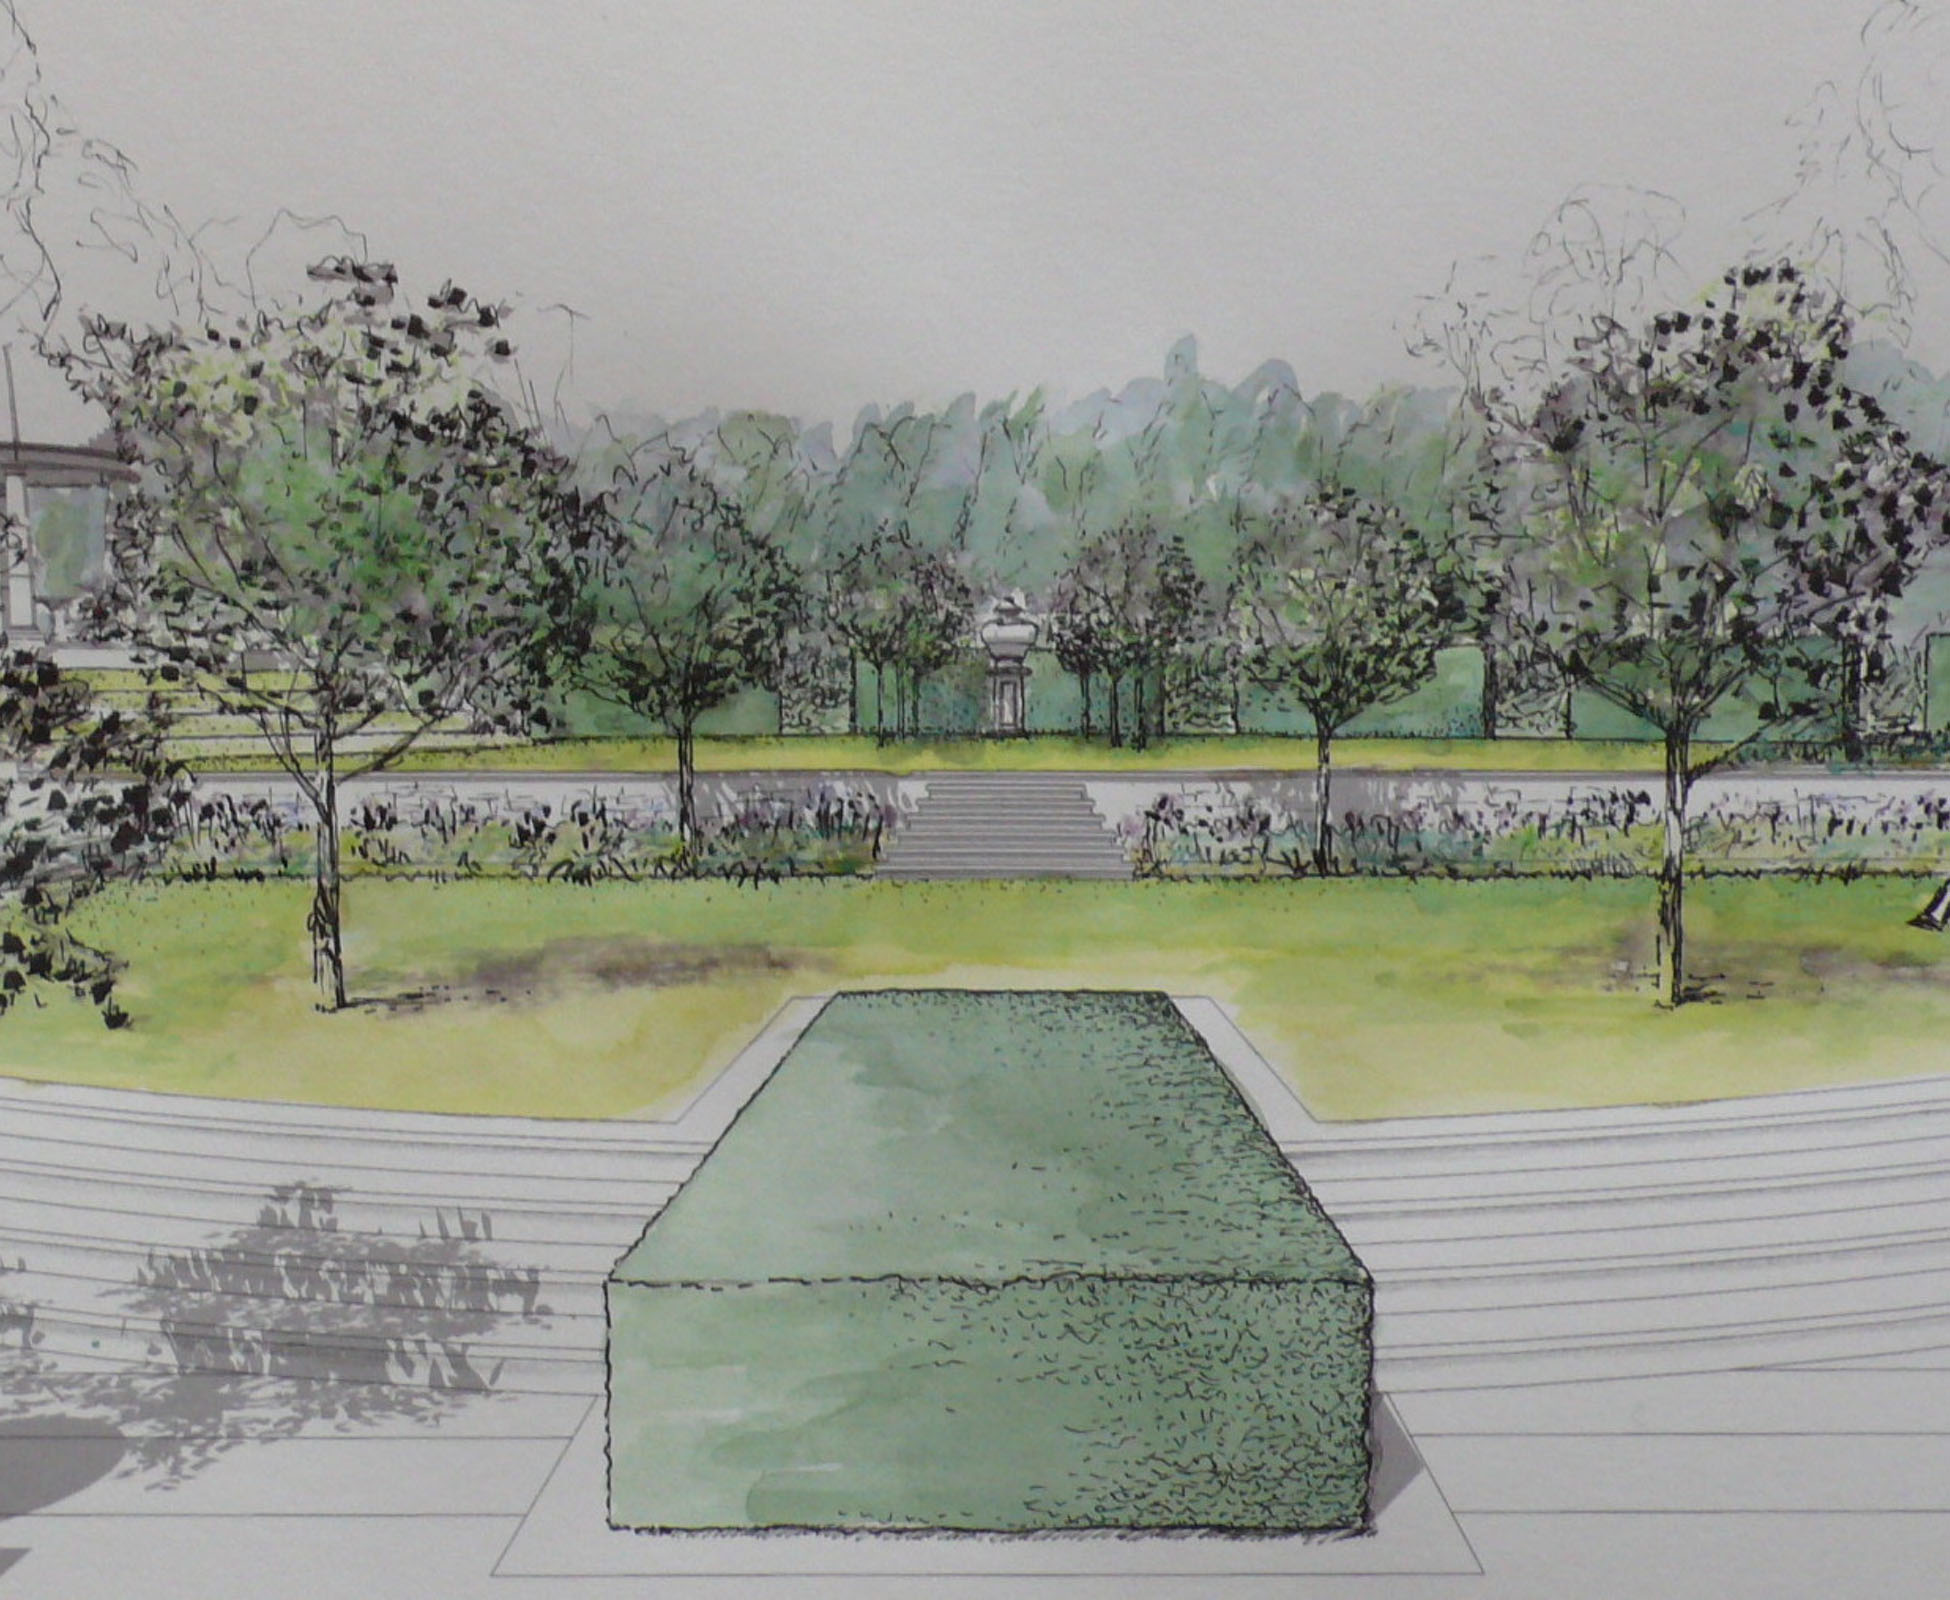 One of London Garden Designer original design sketches, hand drawing, to explain the concept to the client of this country garden.